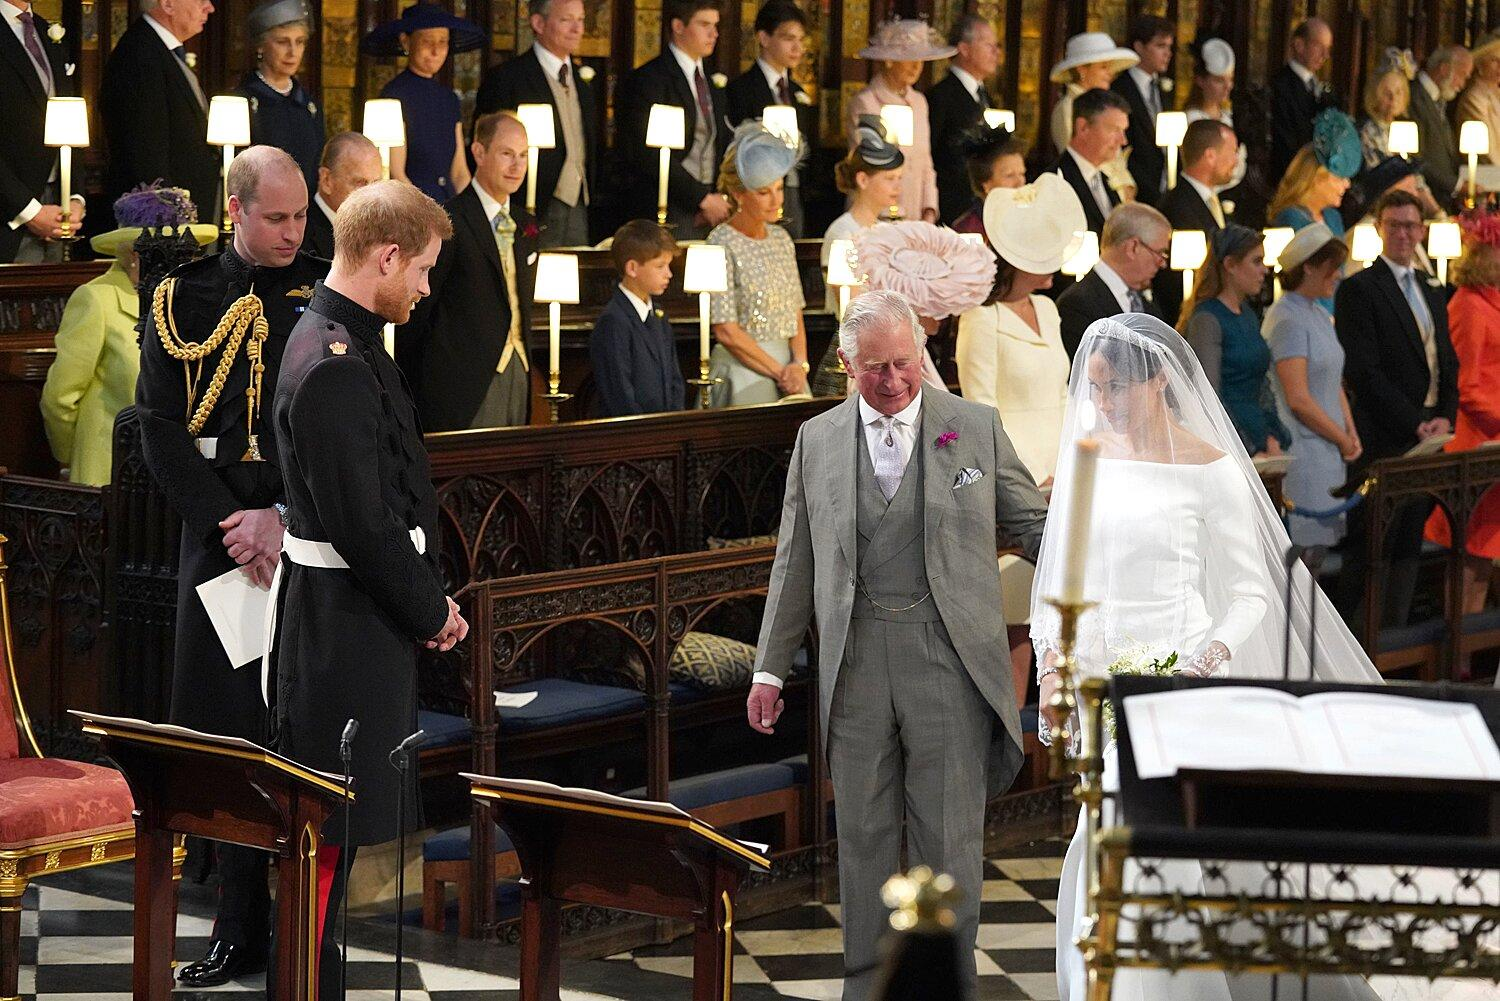 prince charles recycled a suit from 1984 for prince harry and meghan markle s royal wedding https uk finance yahoo com news prince charles recycled suit 1984 185905214 html